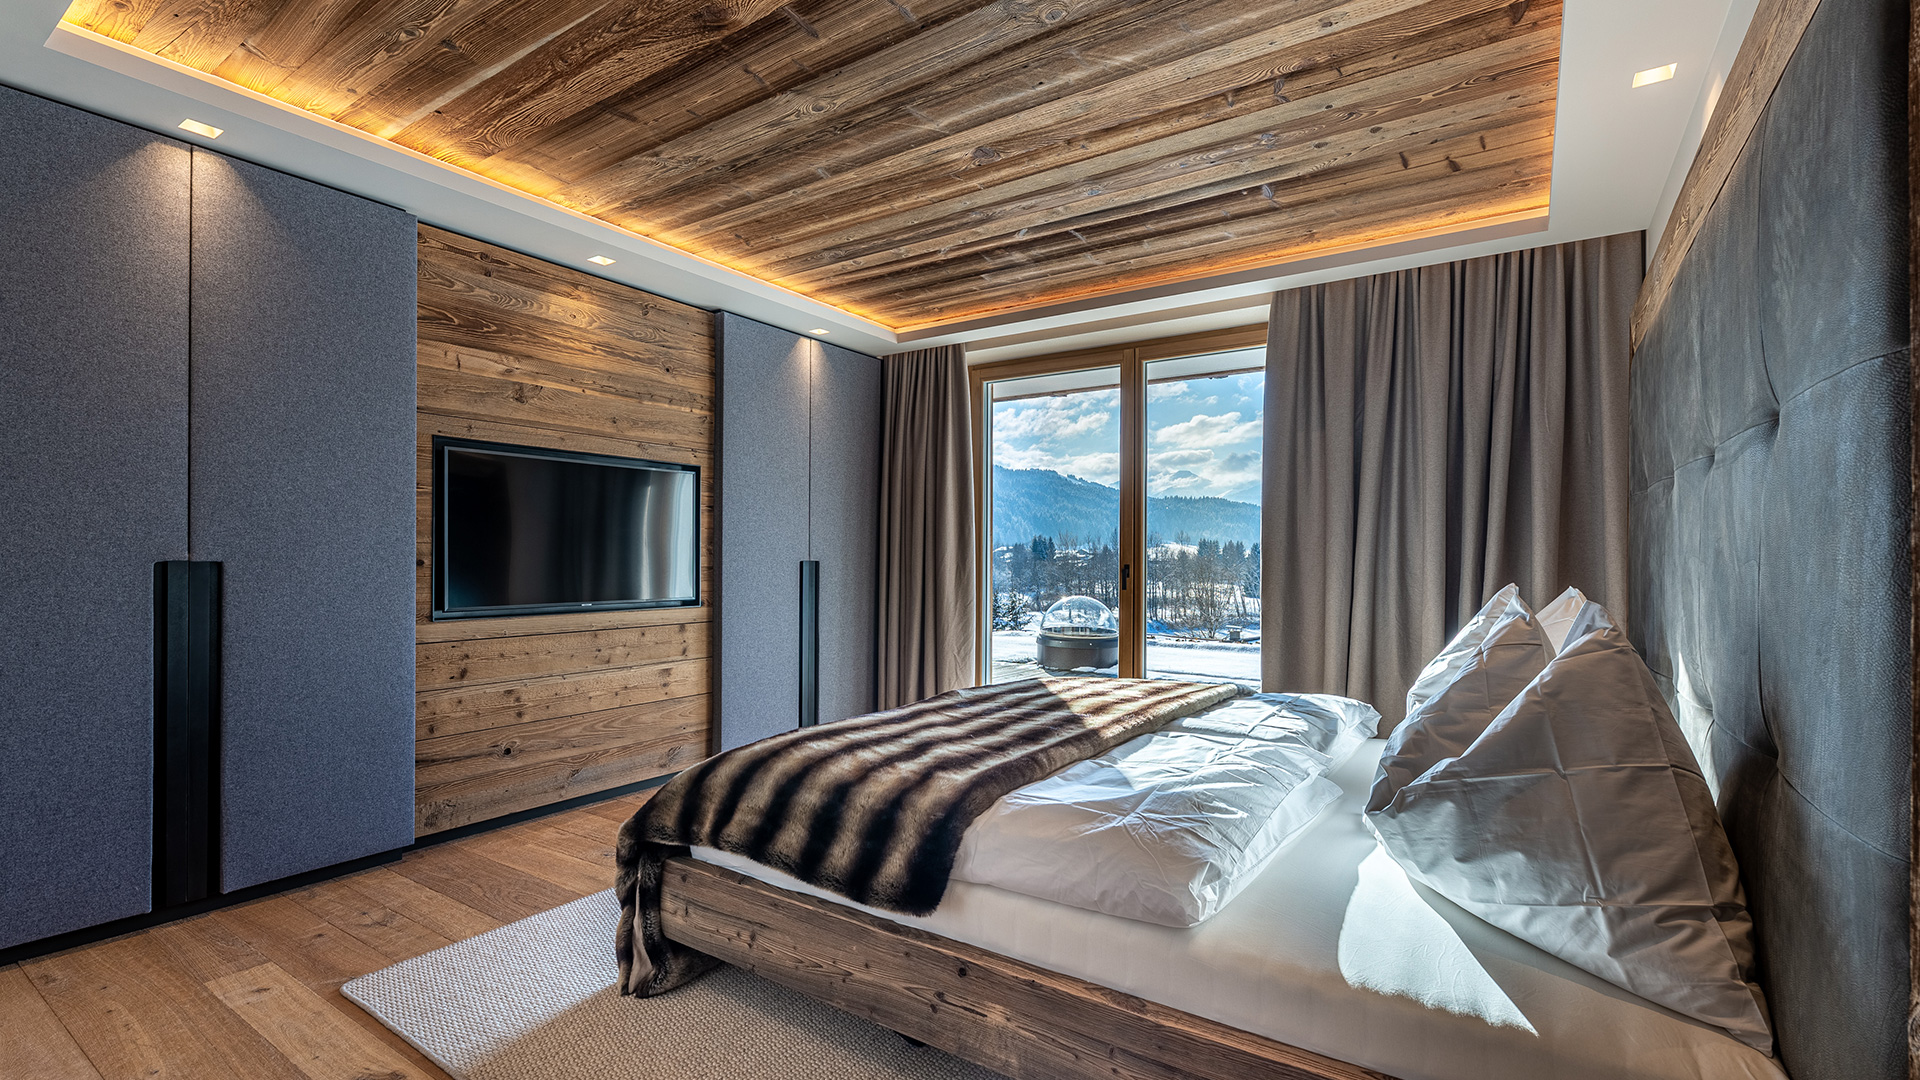 The Golfers Residence Chalet, Austria